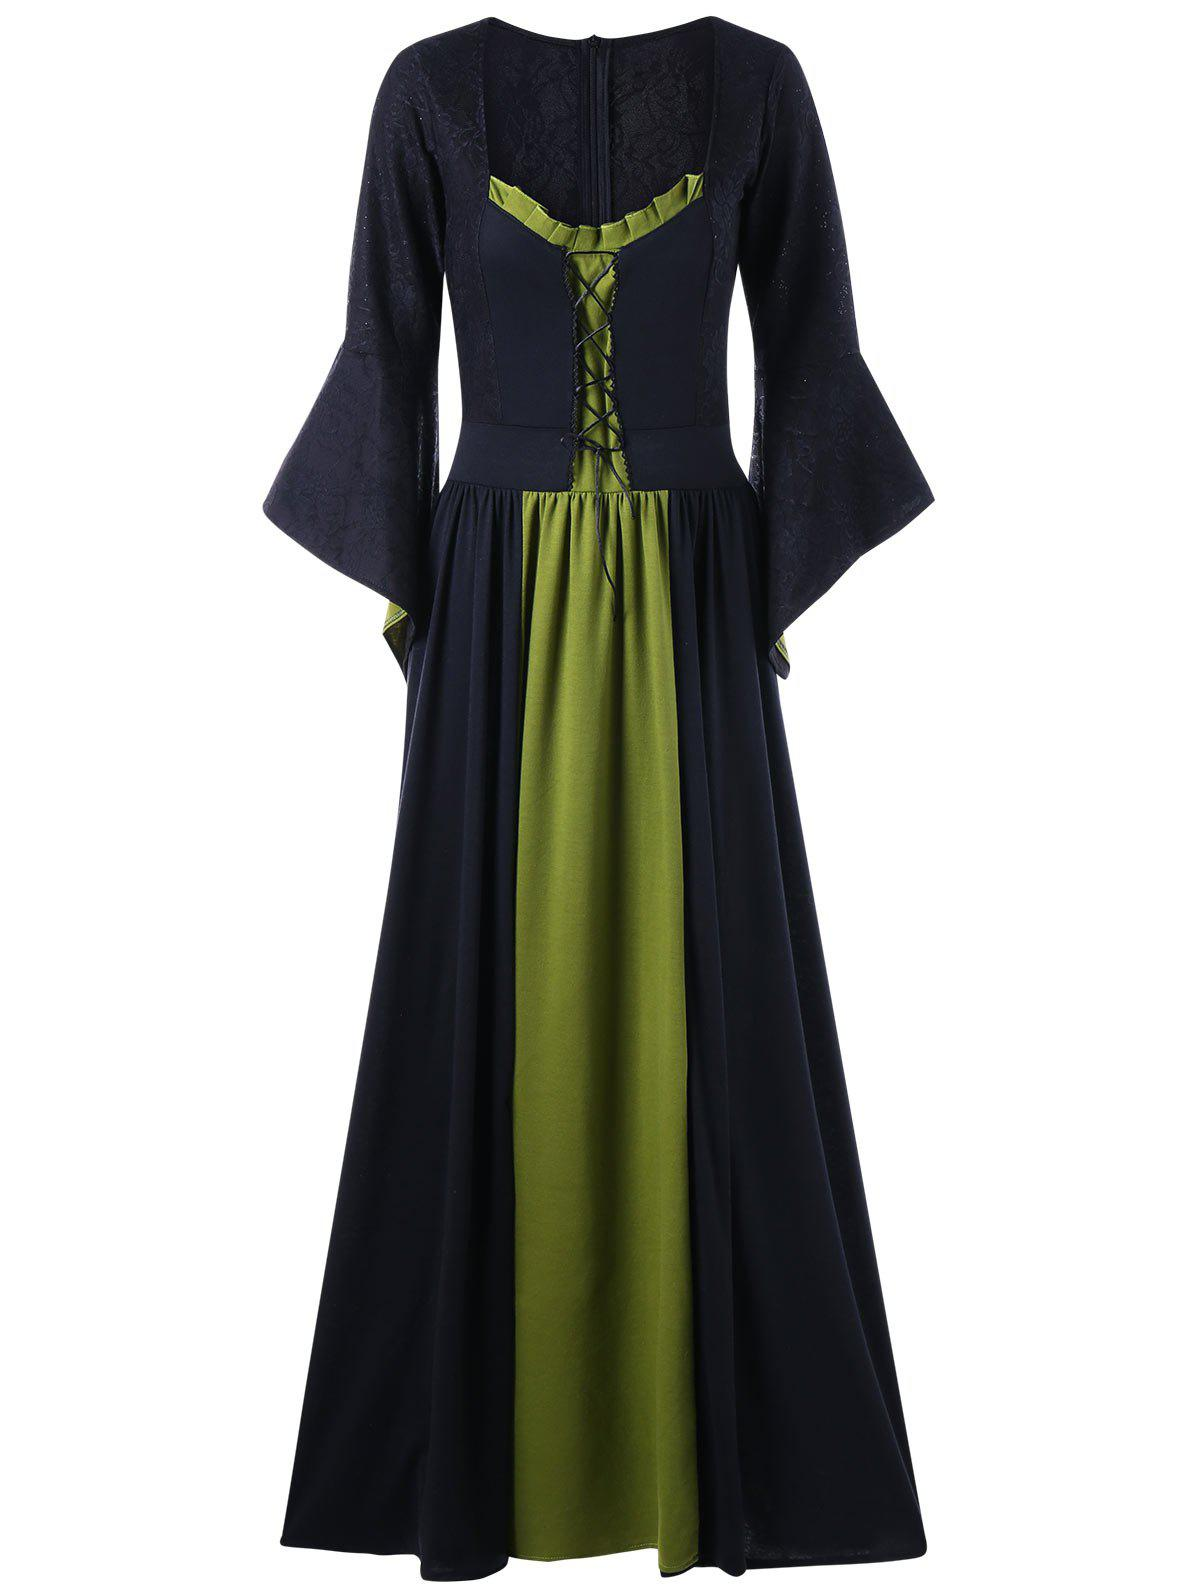 Flounced Flare Sleeve Maxi Evening DressWOMEN<br><br>Size: 2XL; Color: PEA GREEN; Style: Gothic; Material: Polyester,Spandex; Silhouette: A-Line; Dresses Length: Floor-Length; Neckline: U Neck; Sleeve Length: Long Sleeves; Pattern Type: Solid; With Belt: No; Season: Fall,Spring; Weight: 0.7100kg; Package Contents: 1 x Dress;